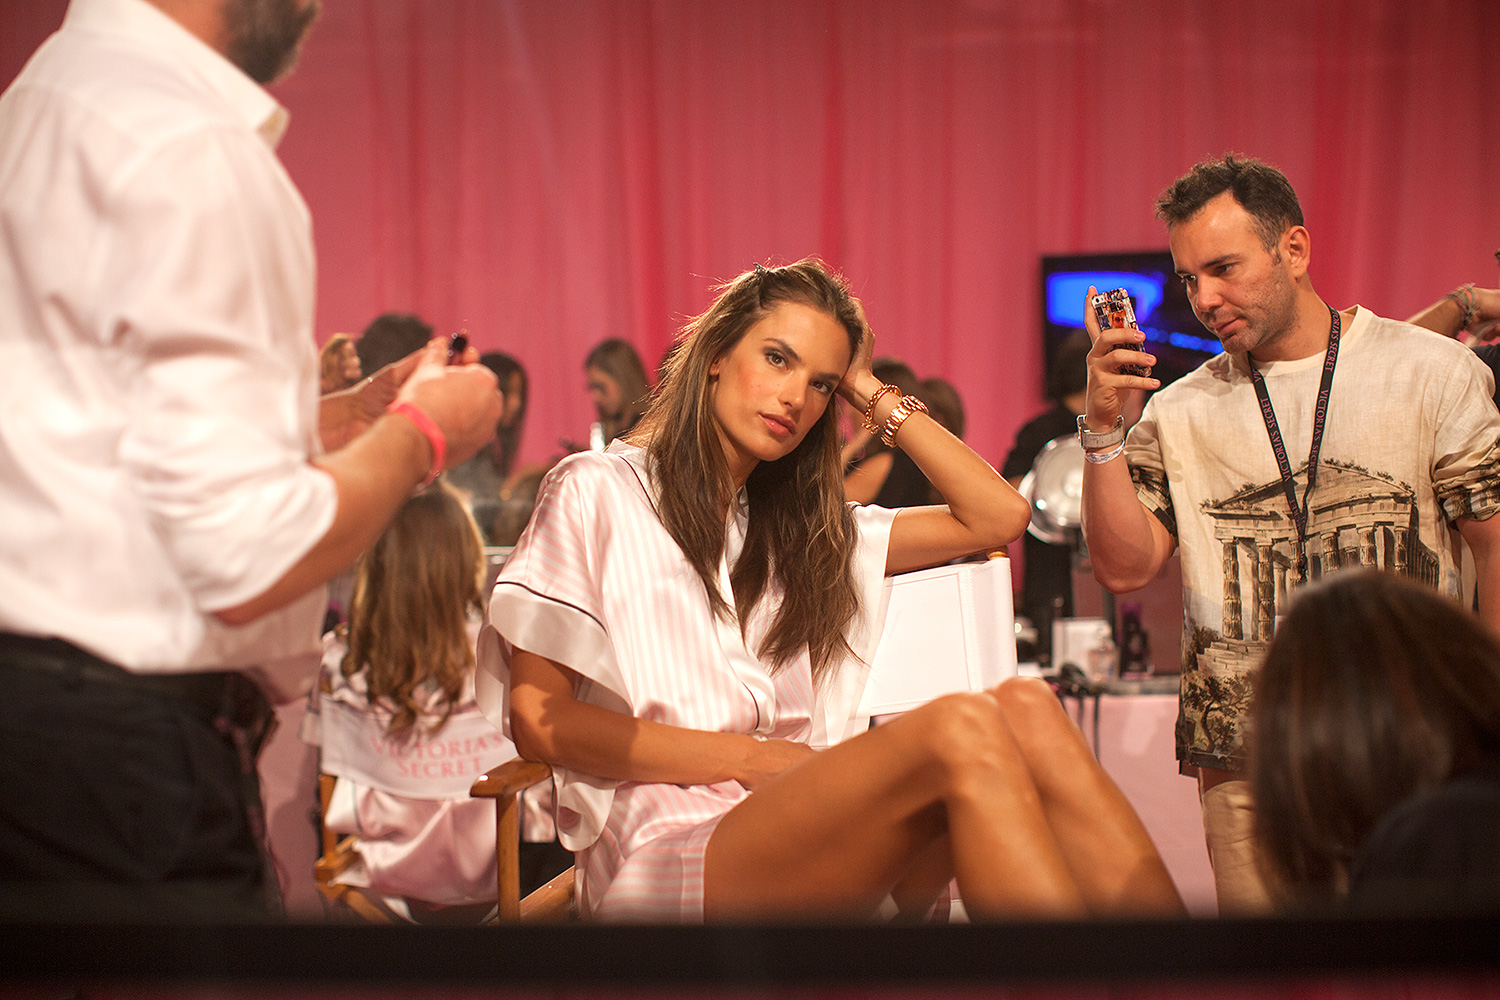 Behind the scenes at the 2013 Victoria's Secret Fashion Show